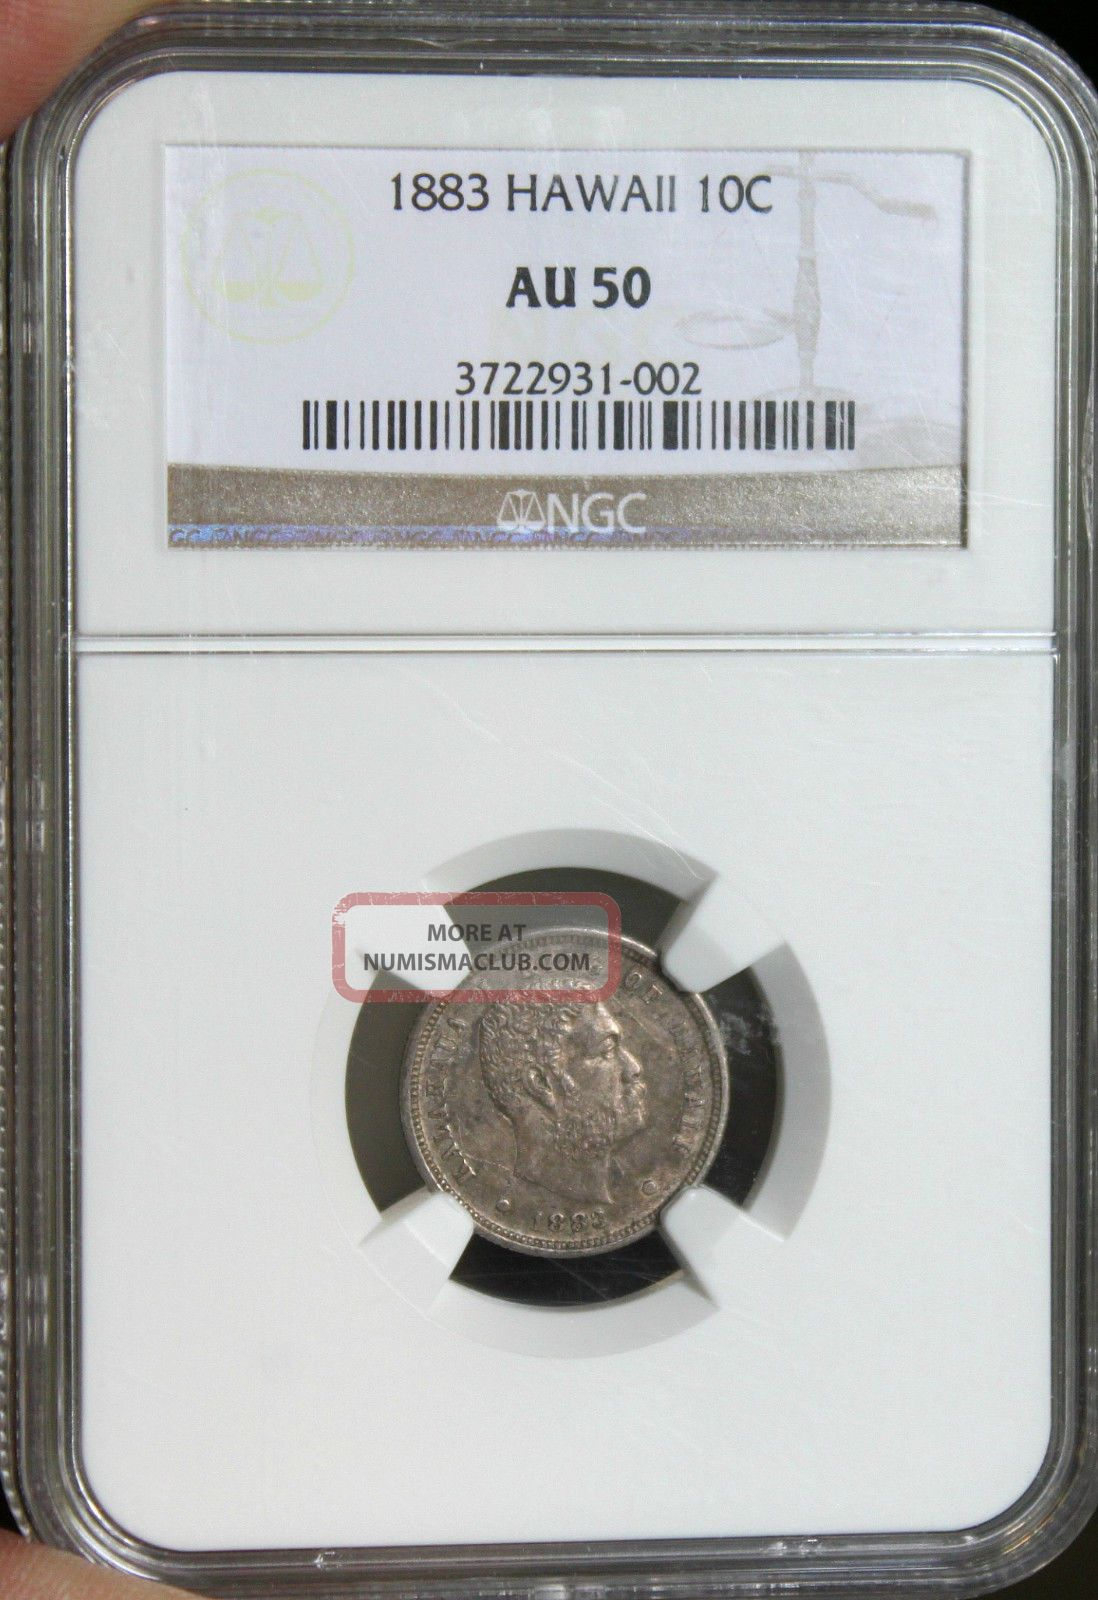 ☆great Price☆ 1883 Hawaii Kalakaua Dime Ngc Au - 50 Cheapest On Ebay North & Central America photo